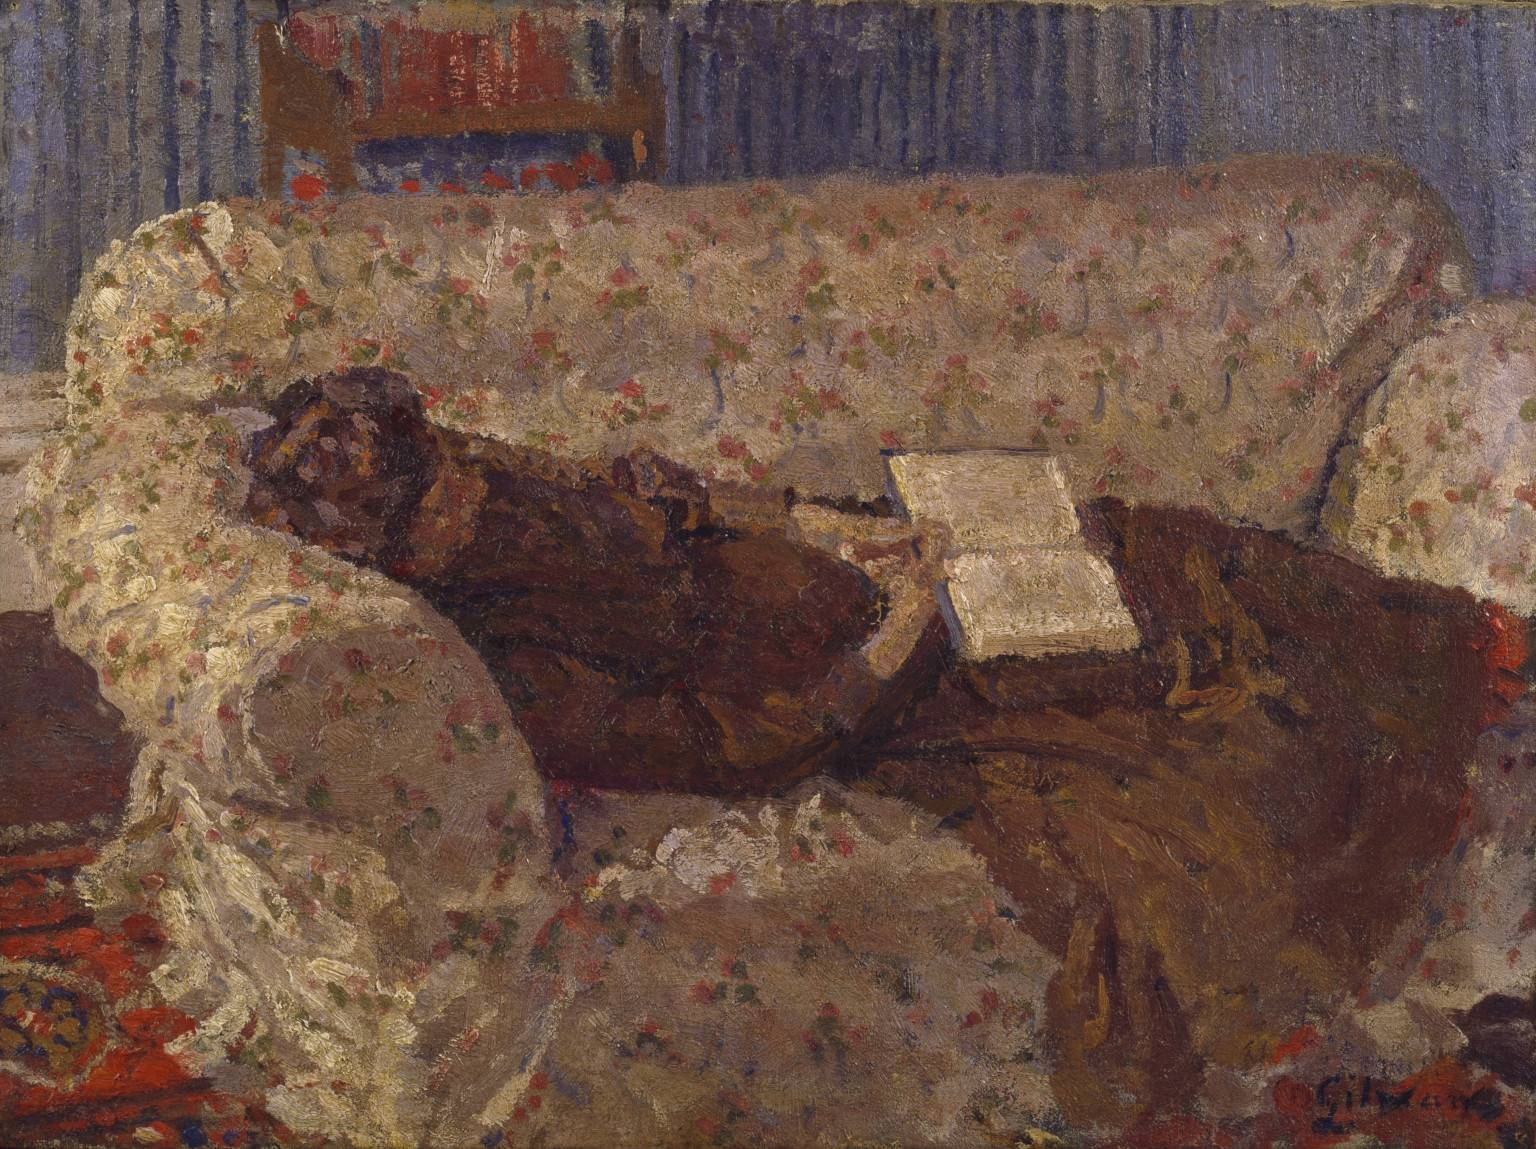 Ethel Sands, 'the Chintz Couch' C.1910-11 (The Camden Town Group with Chintz Covered Sofas (Image 24 of 30)